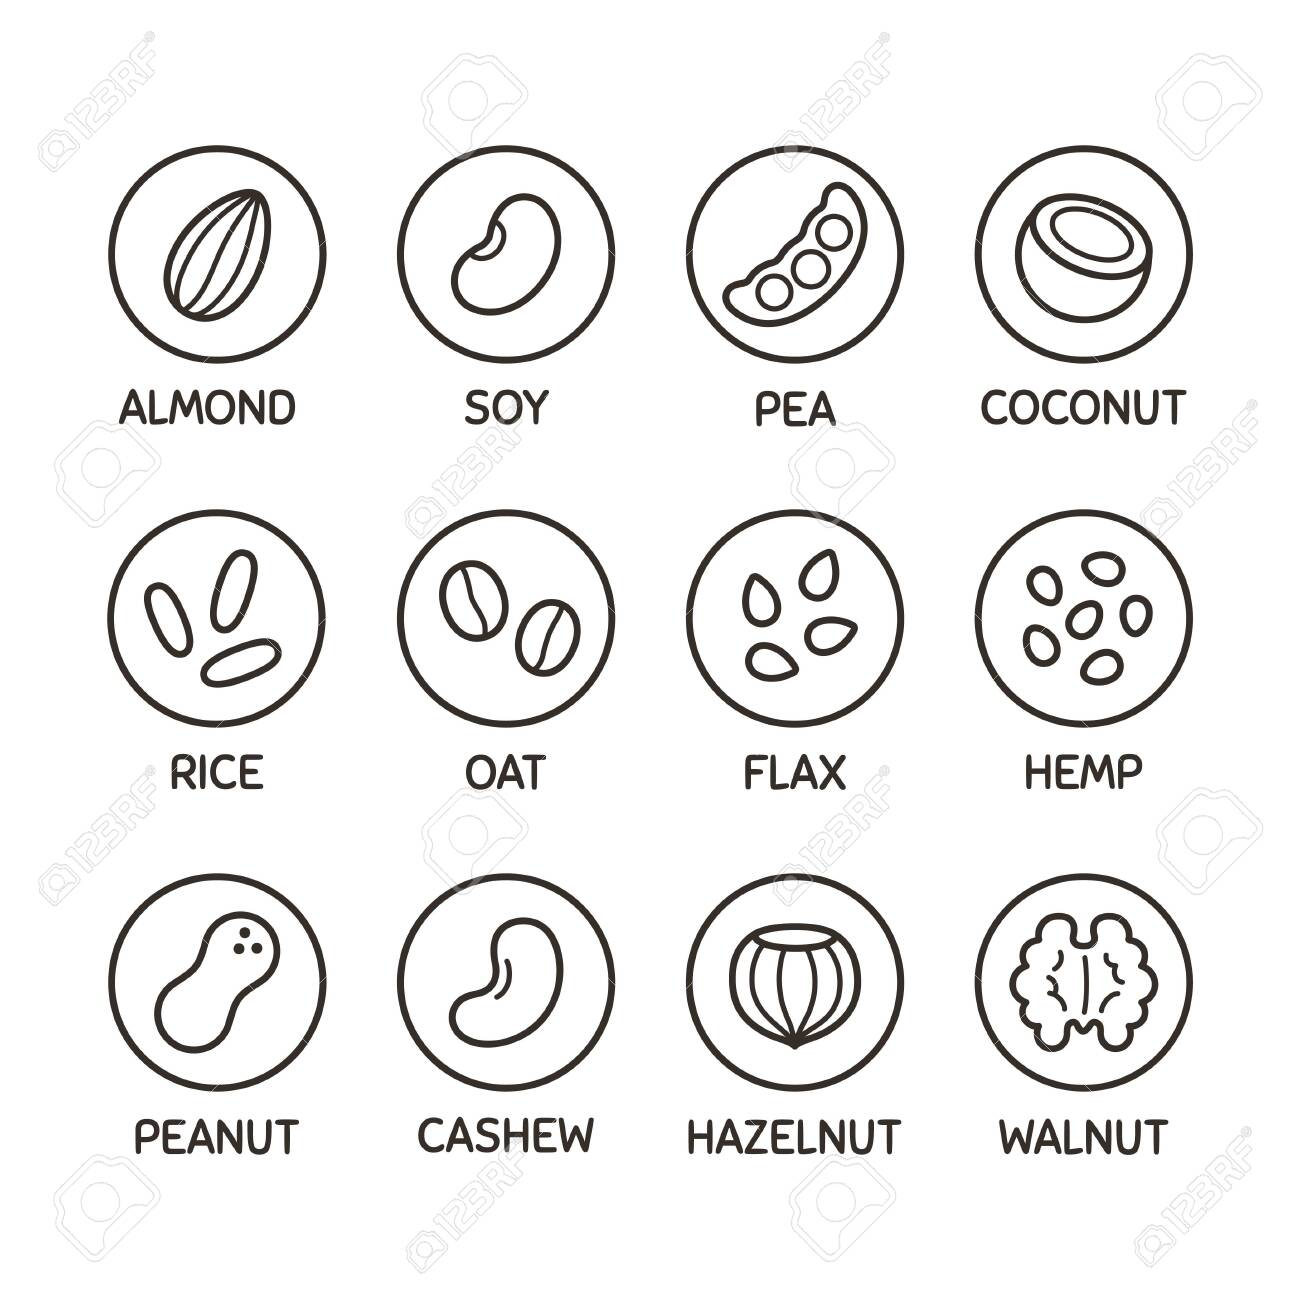 Plant based milk alternative icon set. Nut and seed milk, beans and grains. Labels for non-dairy beverages, vector symbols. - 144219759